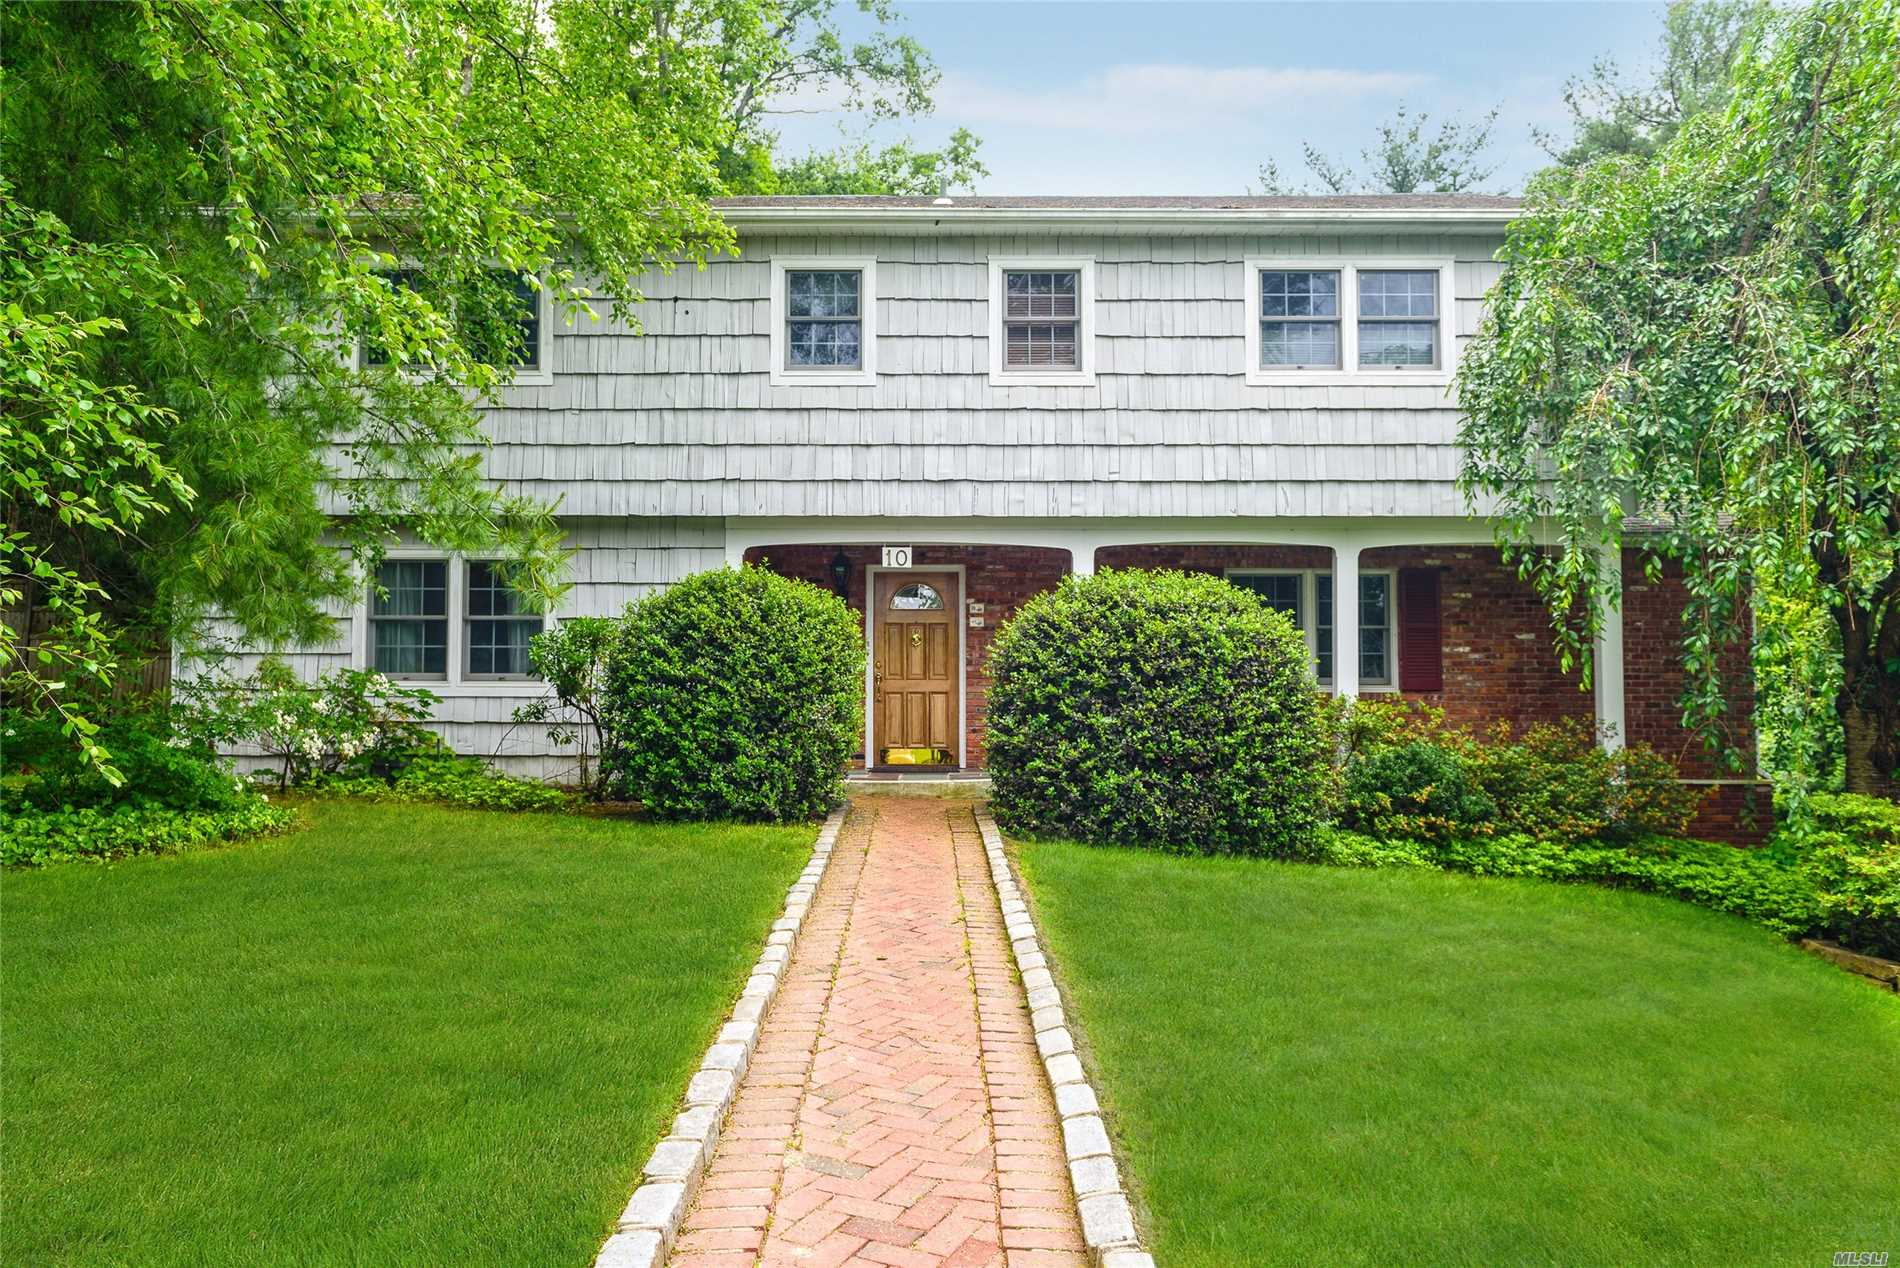 Photo of home for sale at 10 Hickory Ln, Glen Cove NY